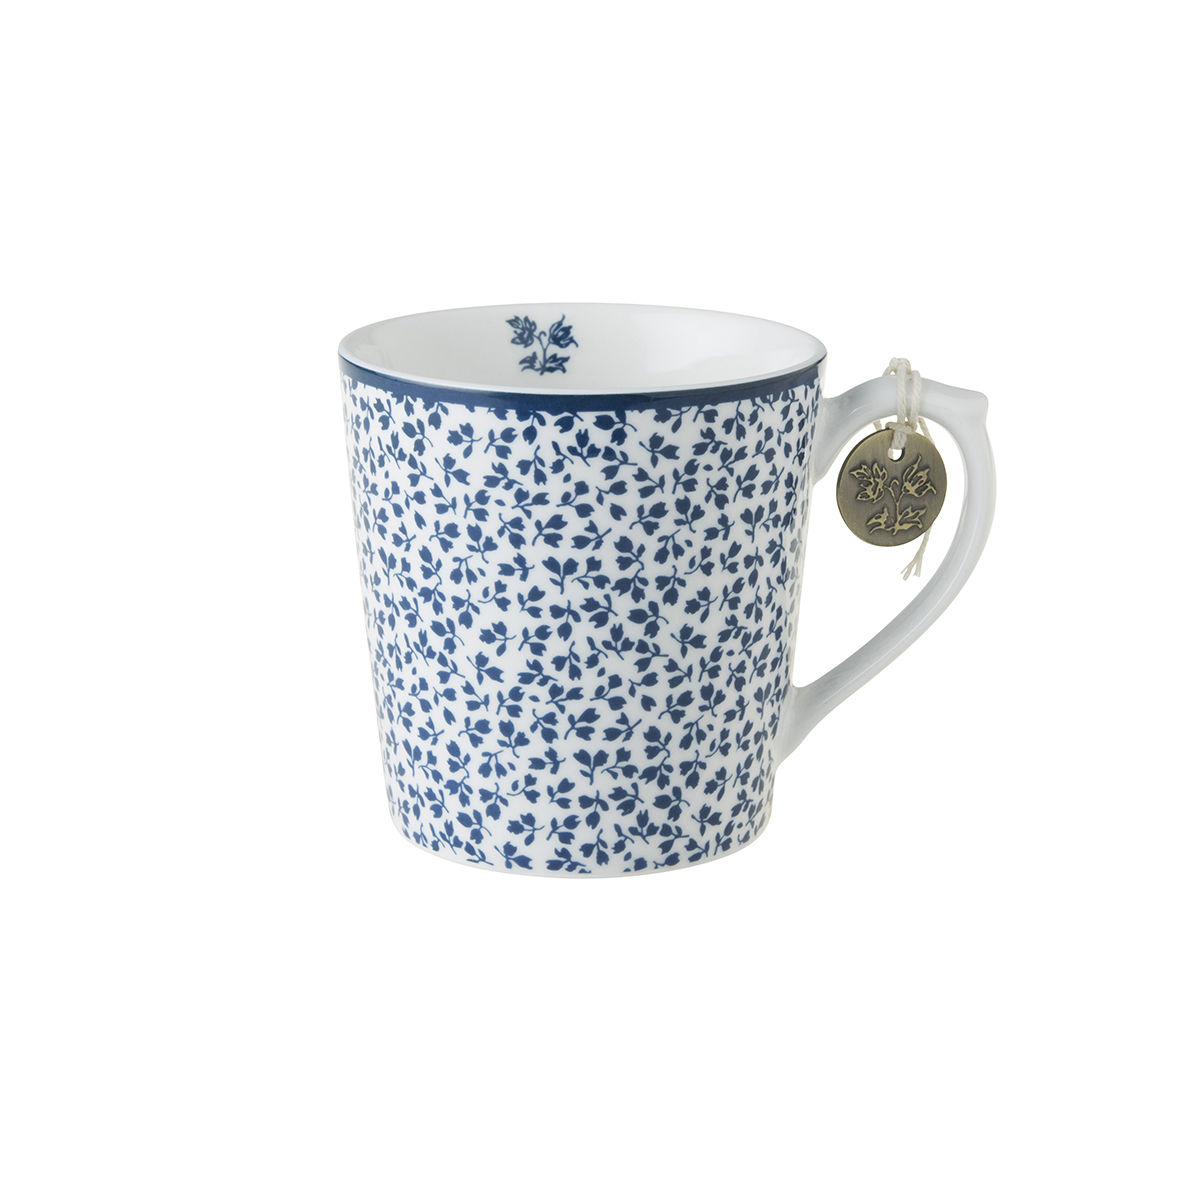 Laura Ashley Mug 10 oz Floris - product images  of